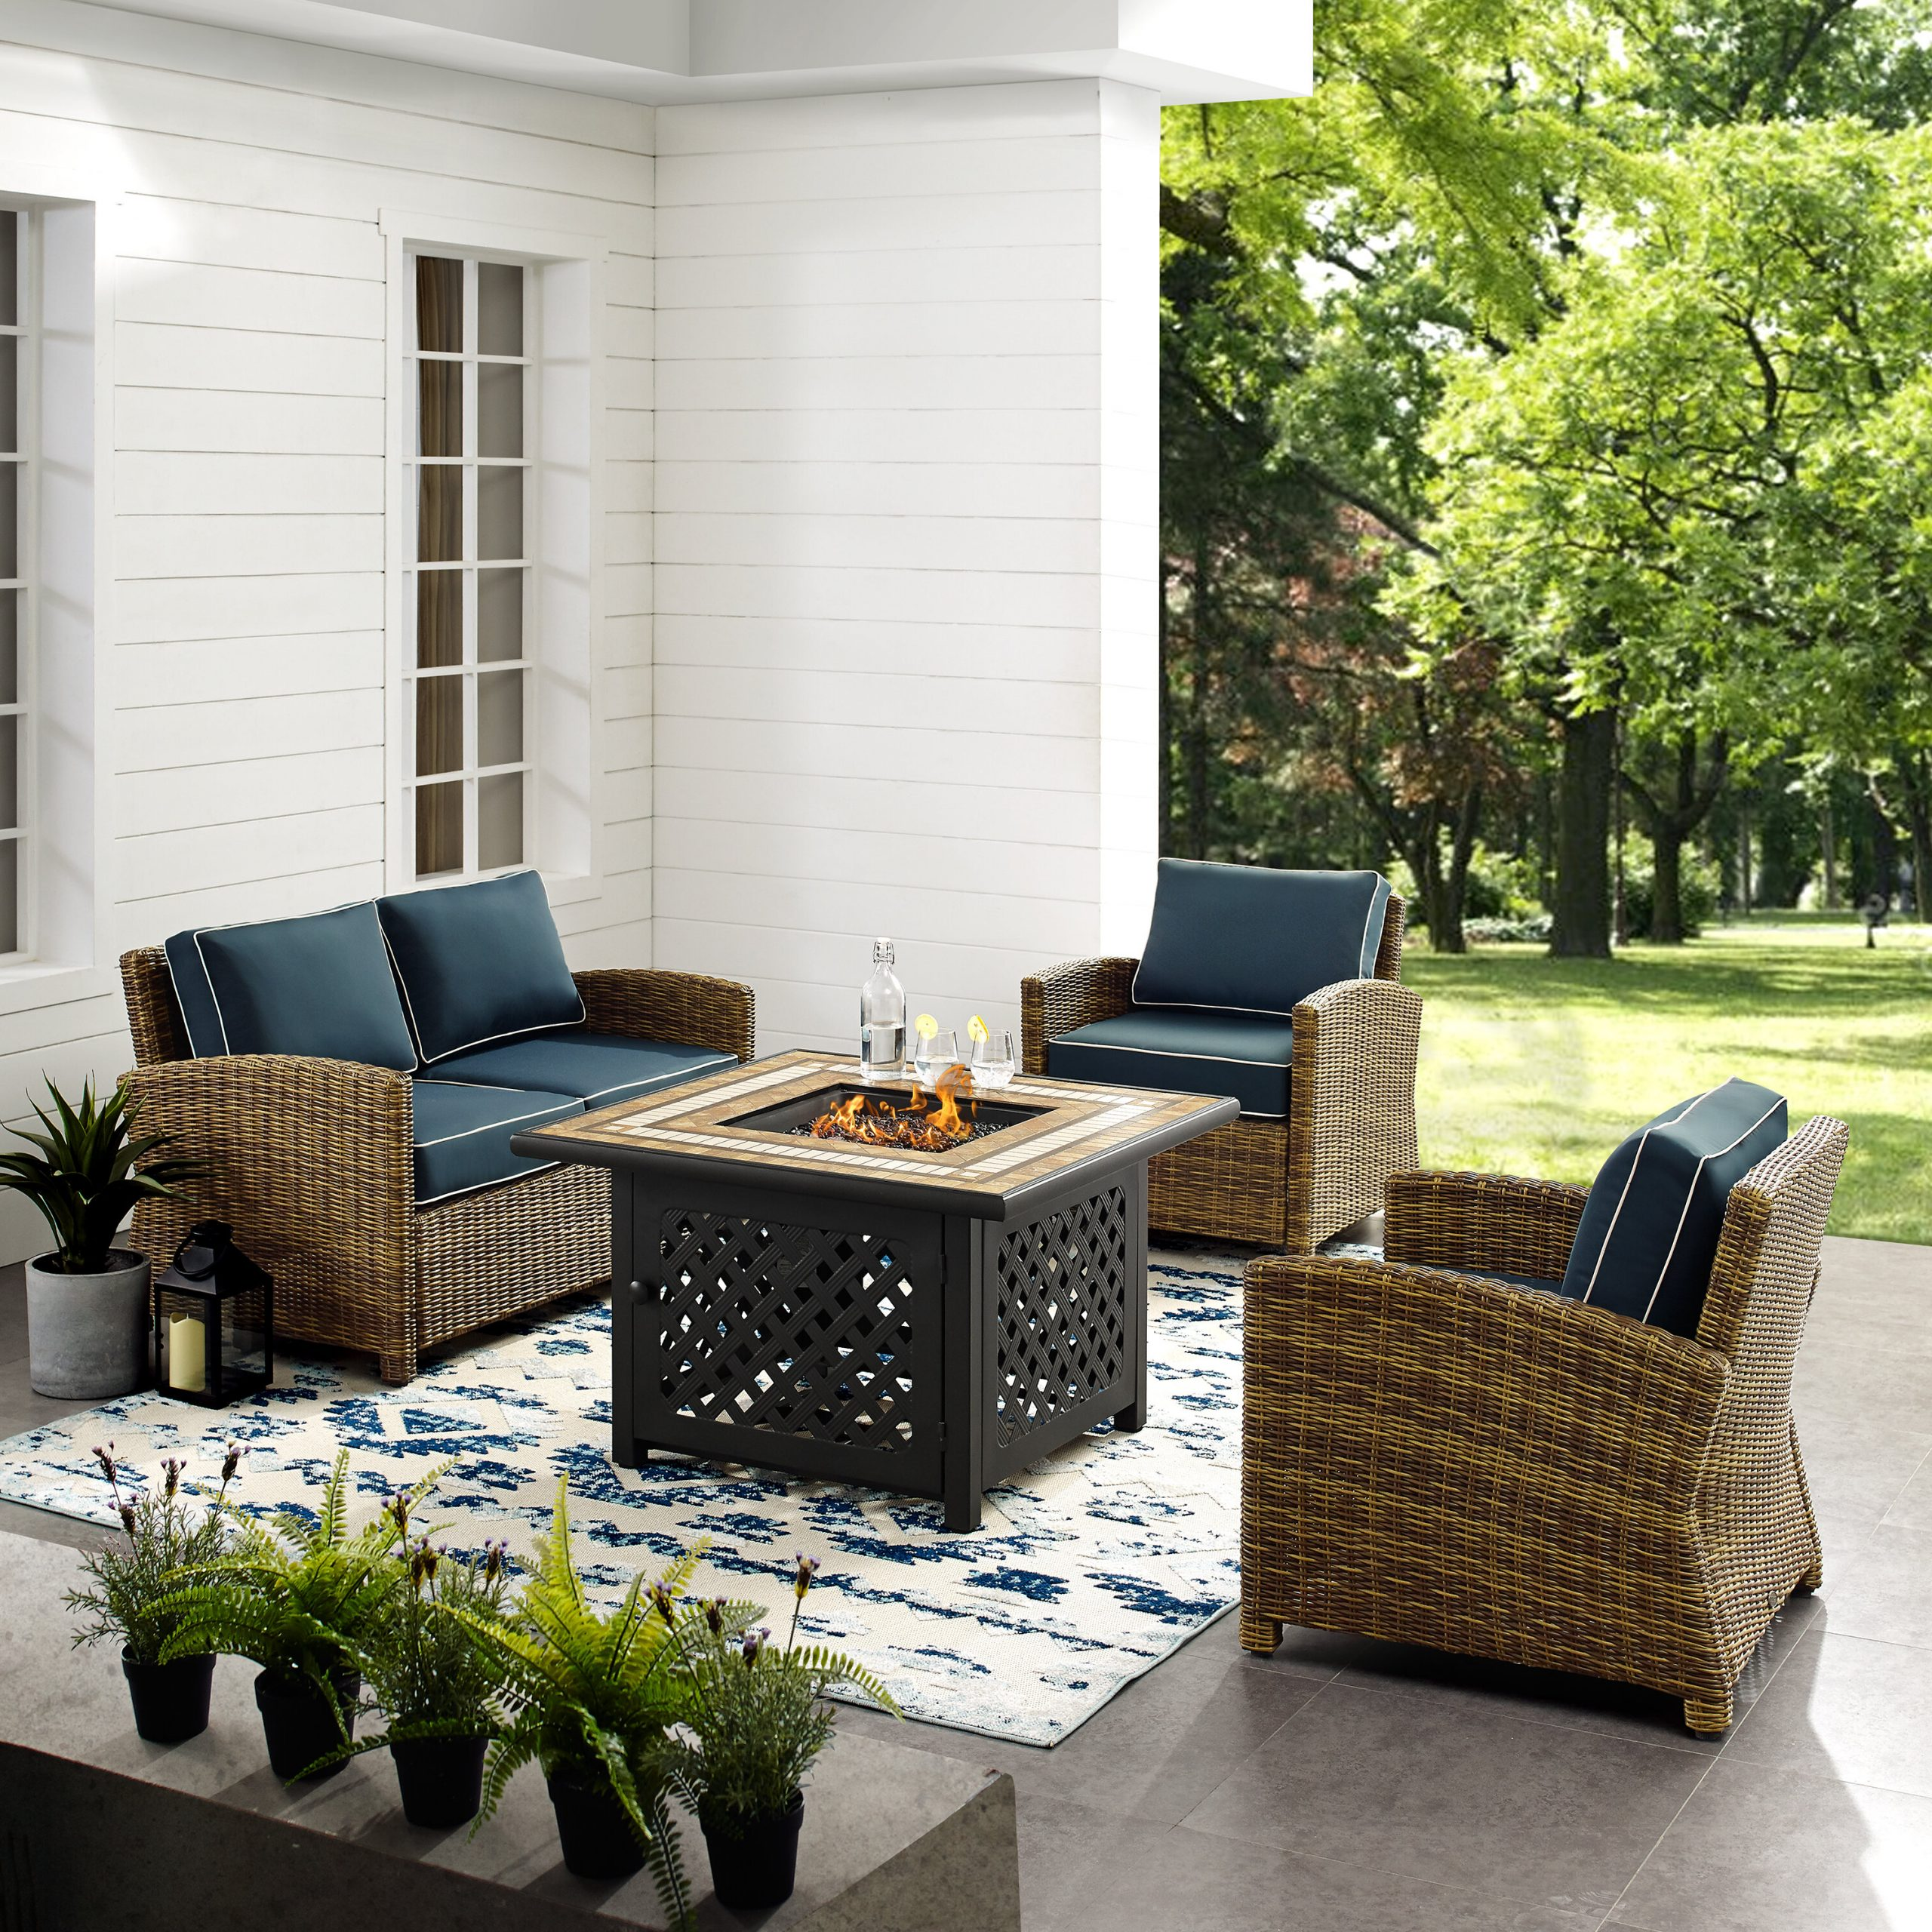 Lawson Wicker Loveseats With Cushions Pertaining To Preferred Lawson 4 Piece Outdoor Wicker Seating Set With Navy Cushions – Loveseat, Two Arm Chairs Fire Table (View 14 of 25)